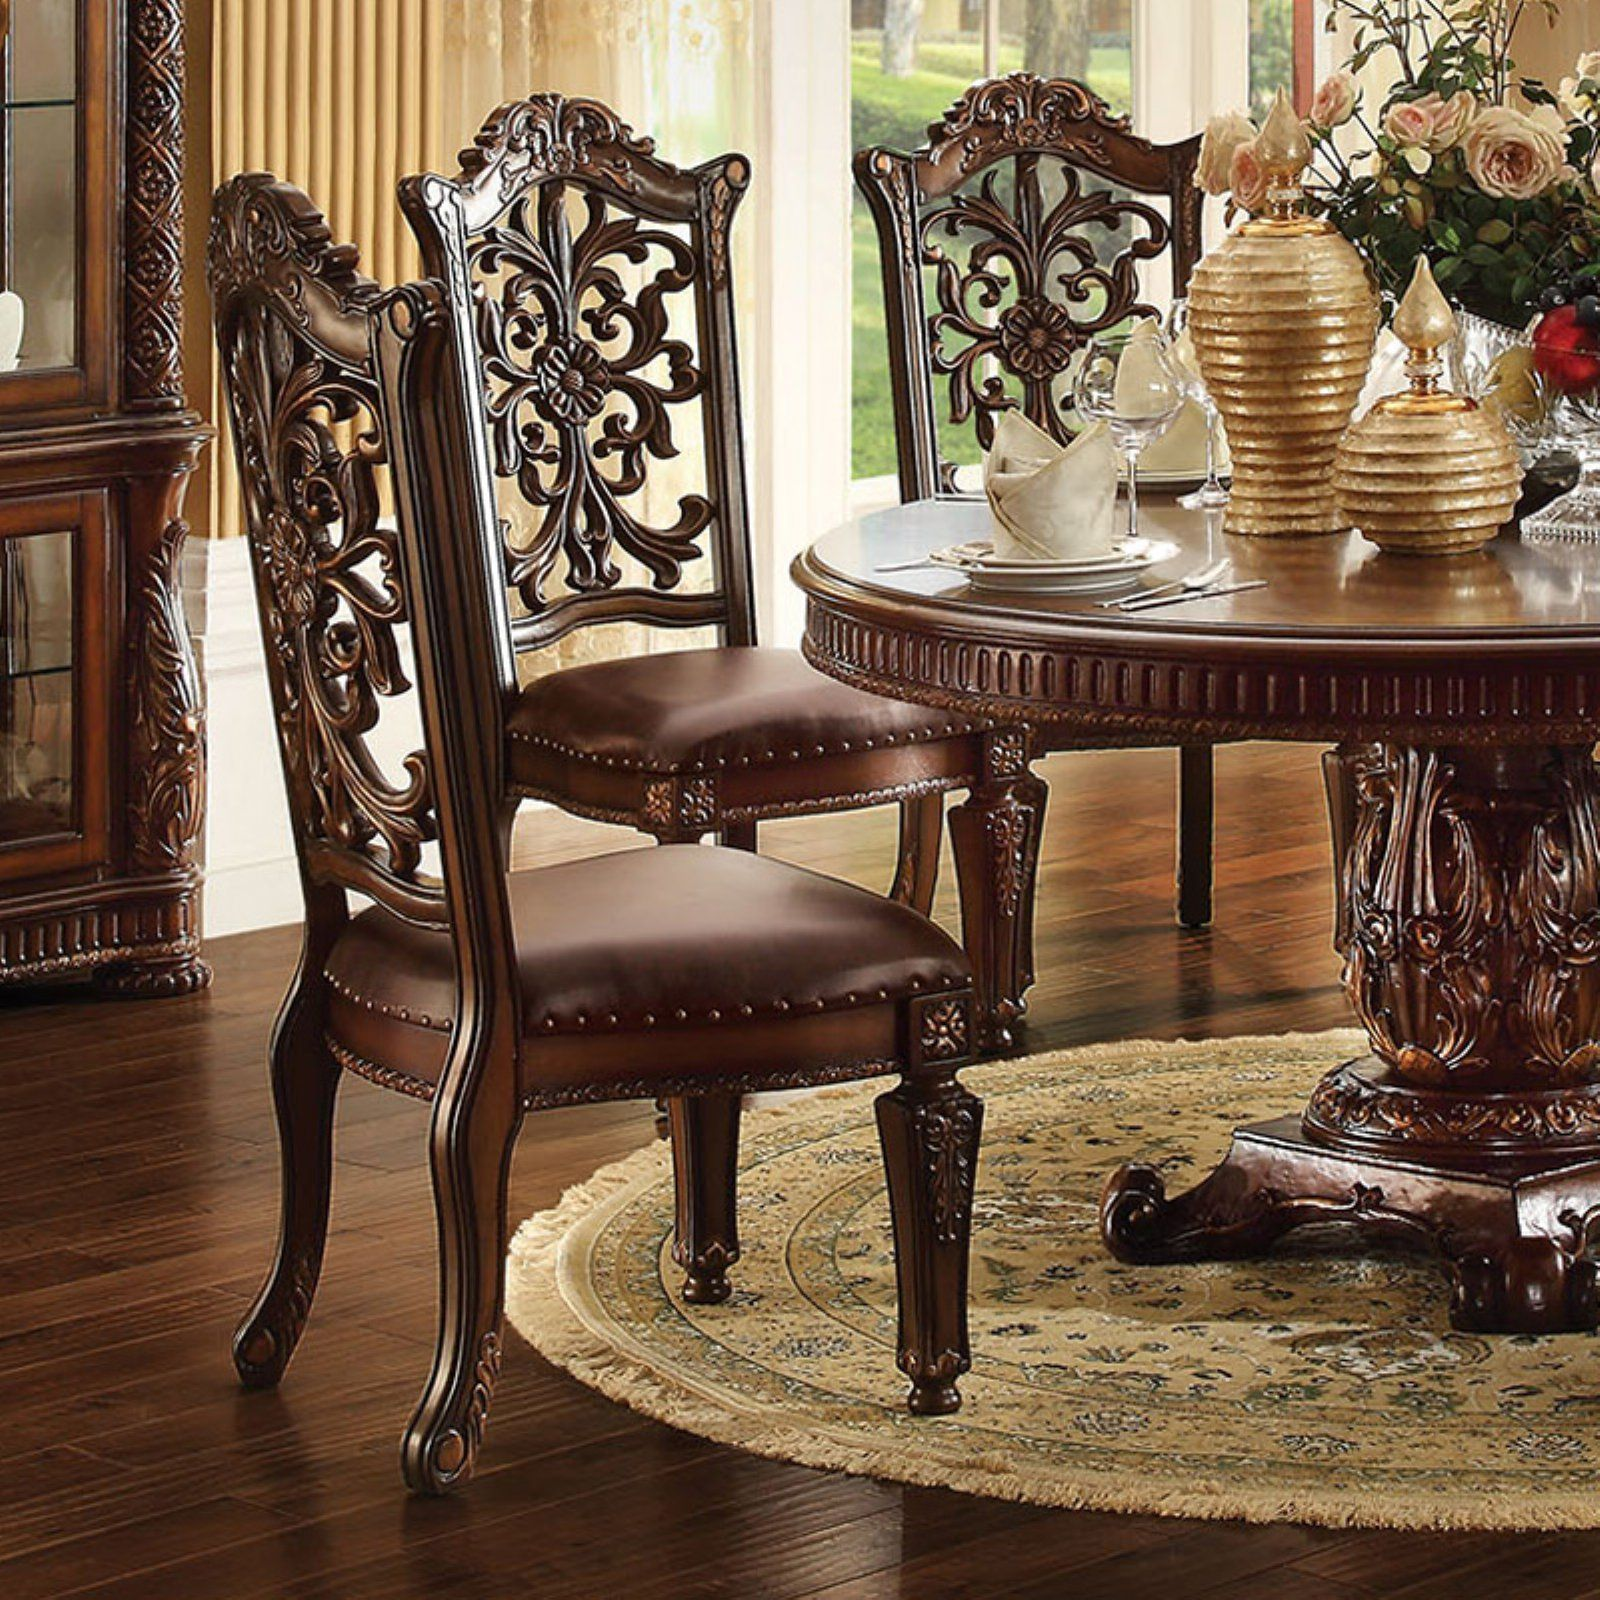 Acme Furniture Vendome Ornate Dining Side Chair Set Of 2 In 2020 Side Chairs Dining Round Pedestal Dining Table Tuscan Decorating